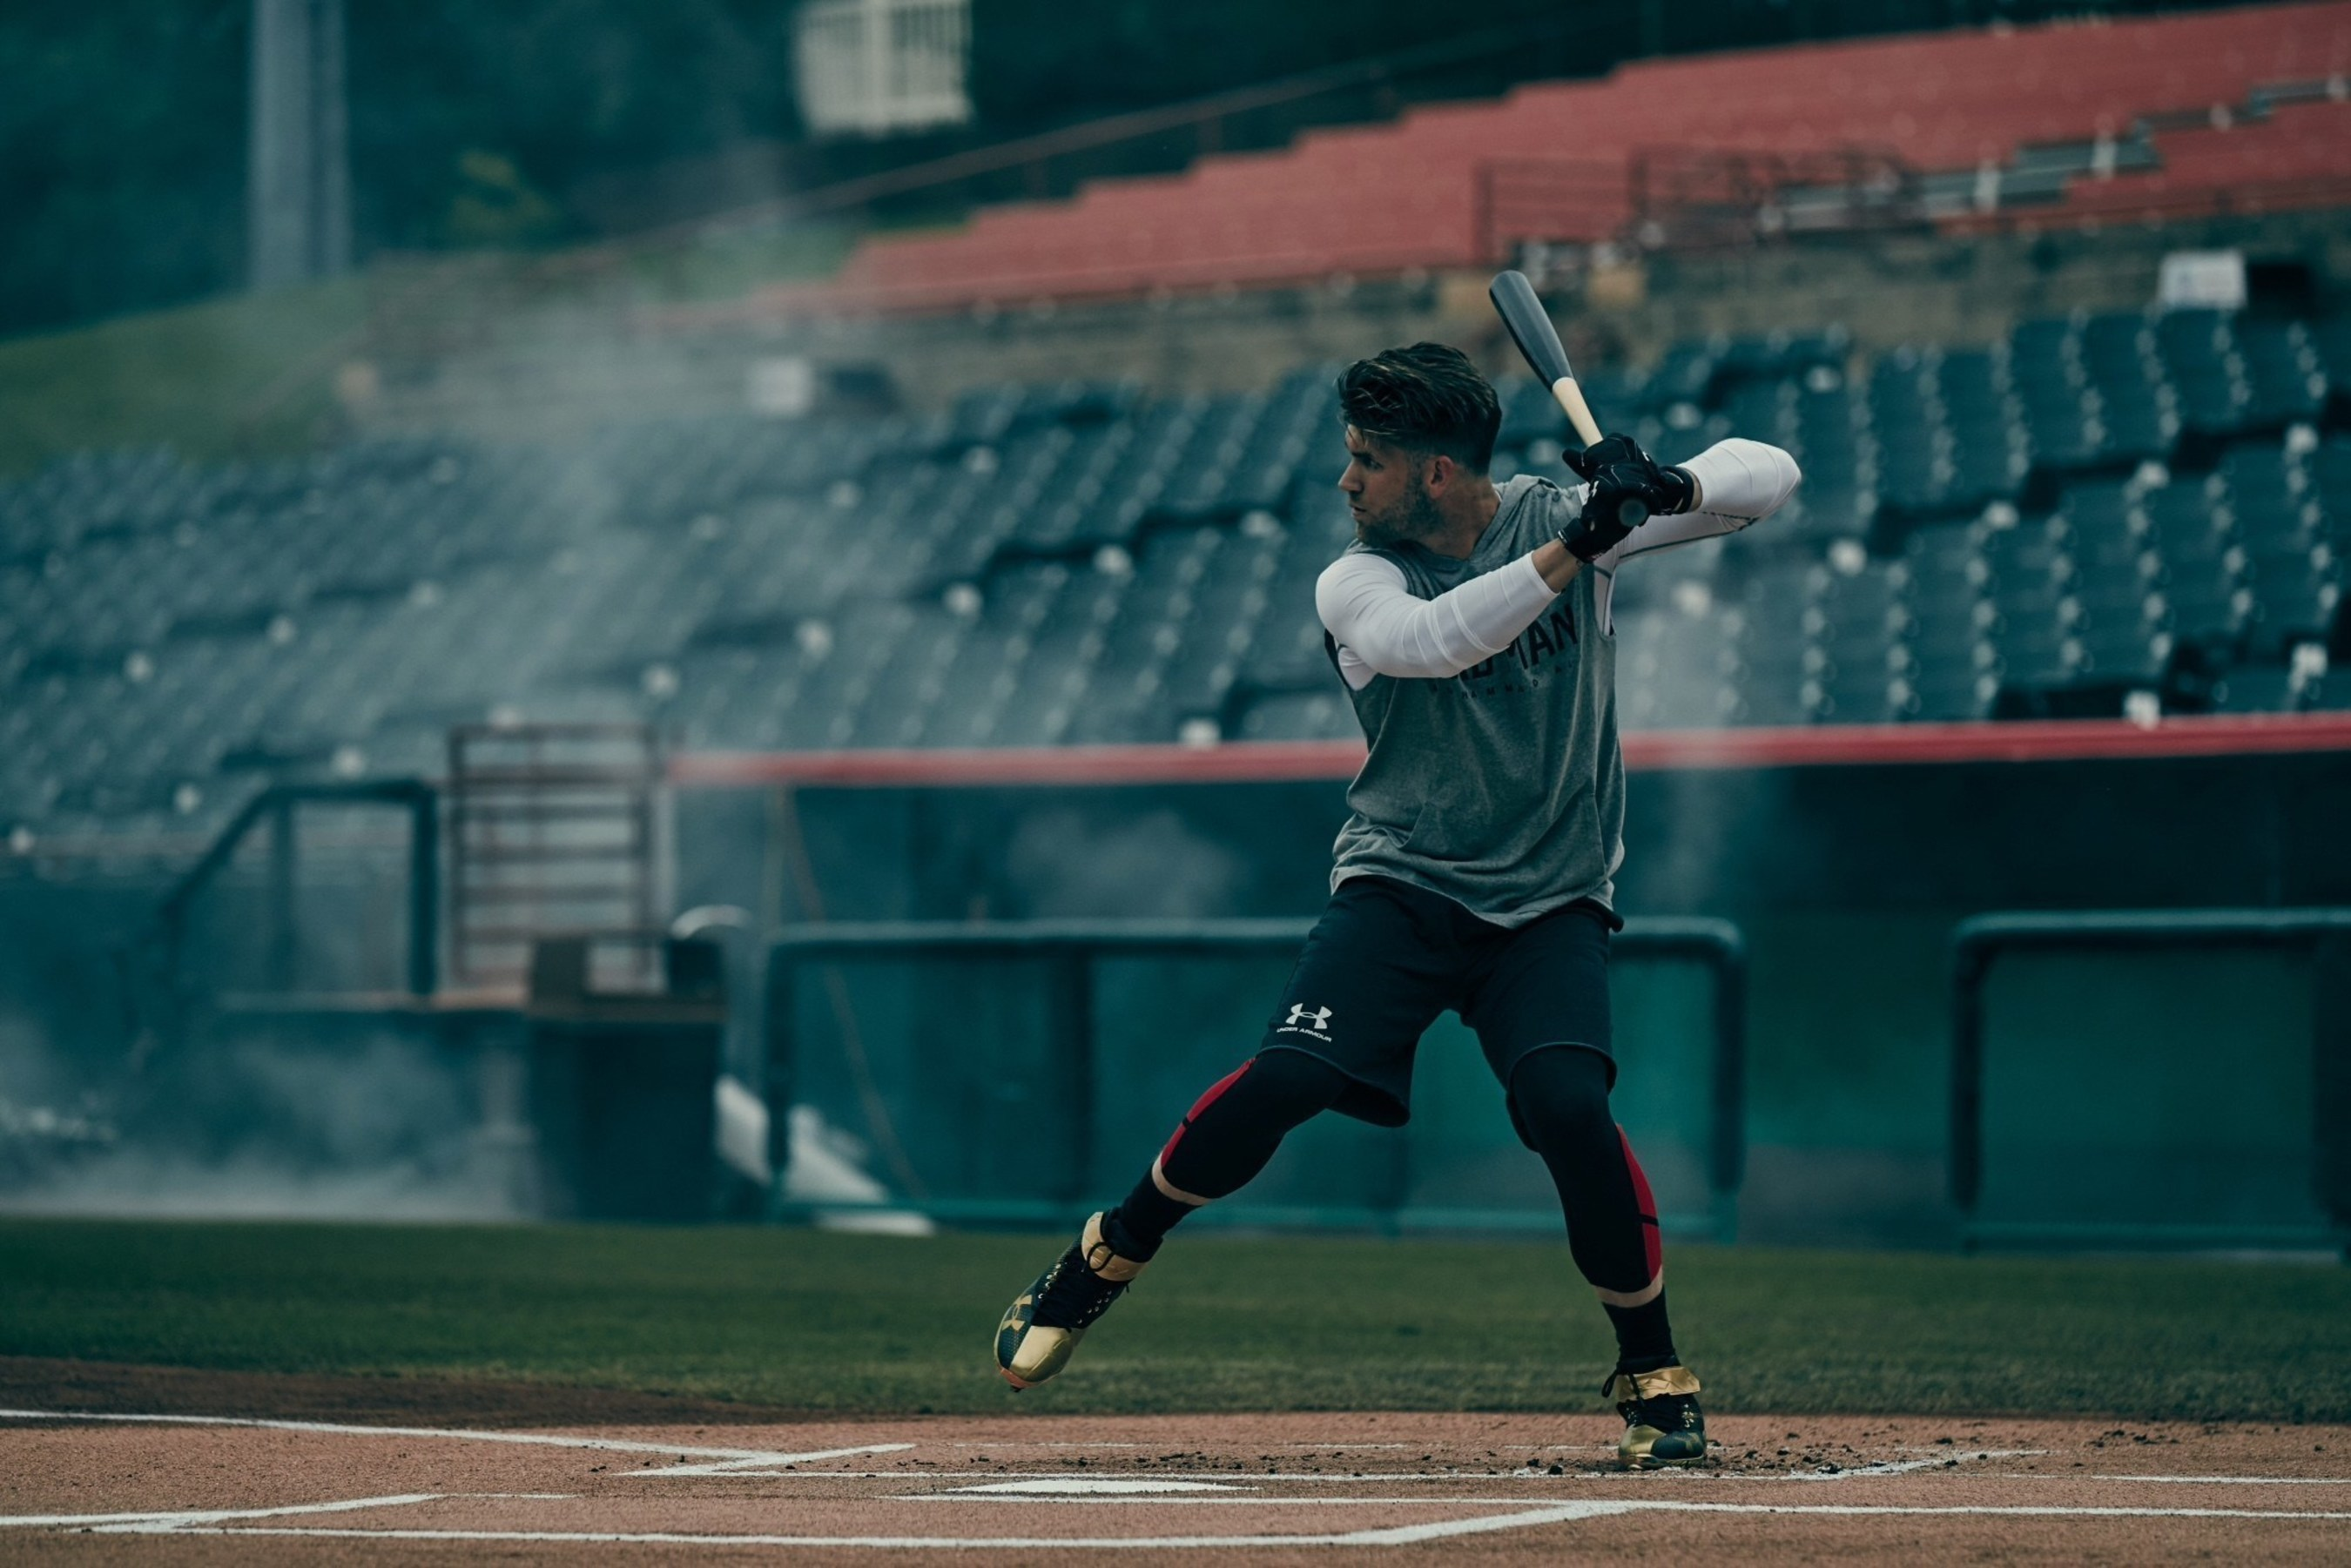 """UNDER ARMOUR LAUNCHES """"IT COMES FROM BELOW"""", A MULTI-SPORT CAMPAIGN FEATURING BRYCE HARPER, CAM NEWTON AND UNDER ARMOUR RUNNING"""